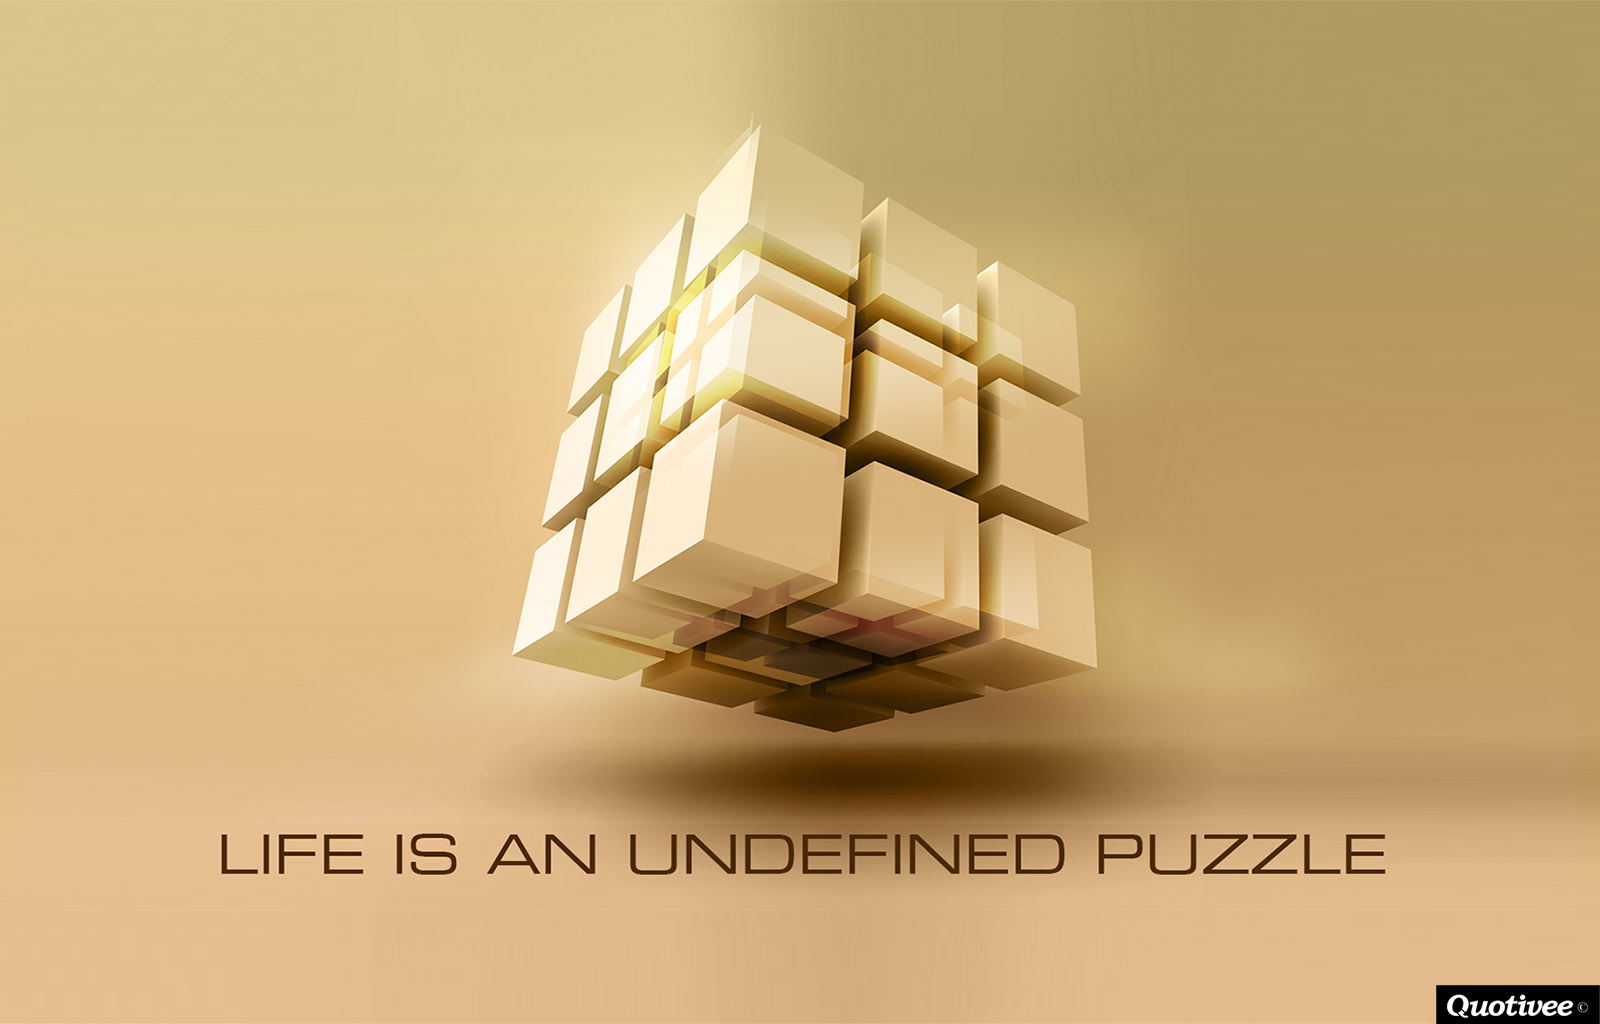 Business Inspirational Quotes Wallpaper Download Life Is An Undefined Puzzle Inspirational Quotes Quotivee